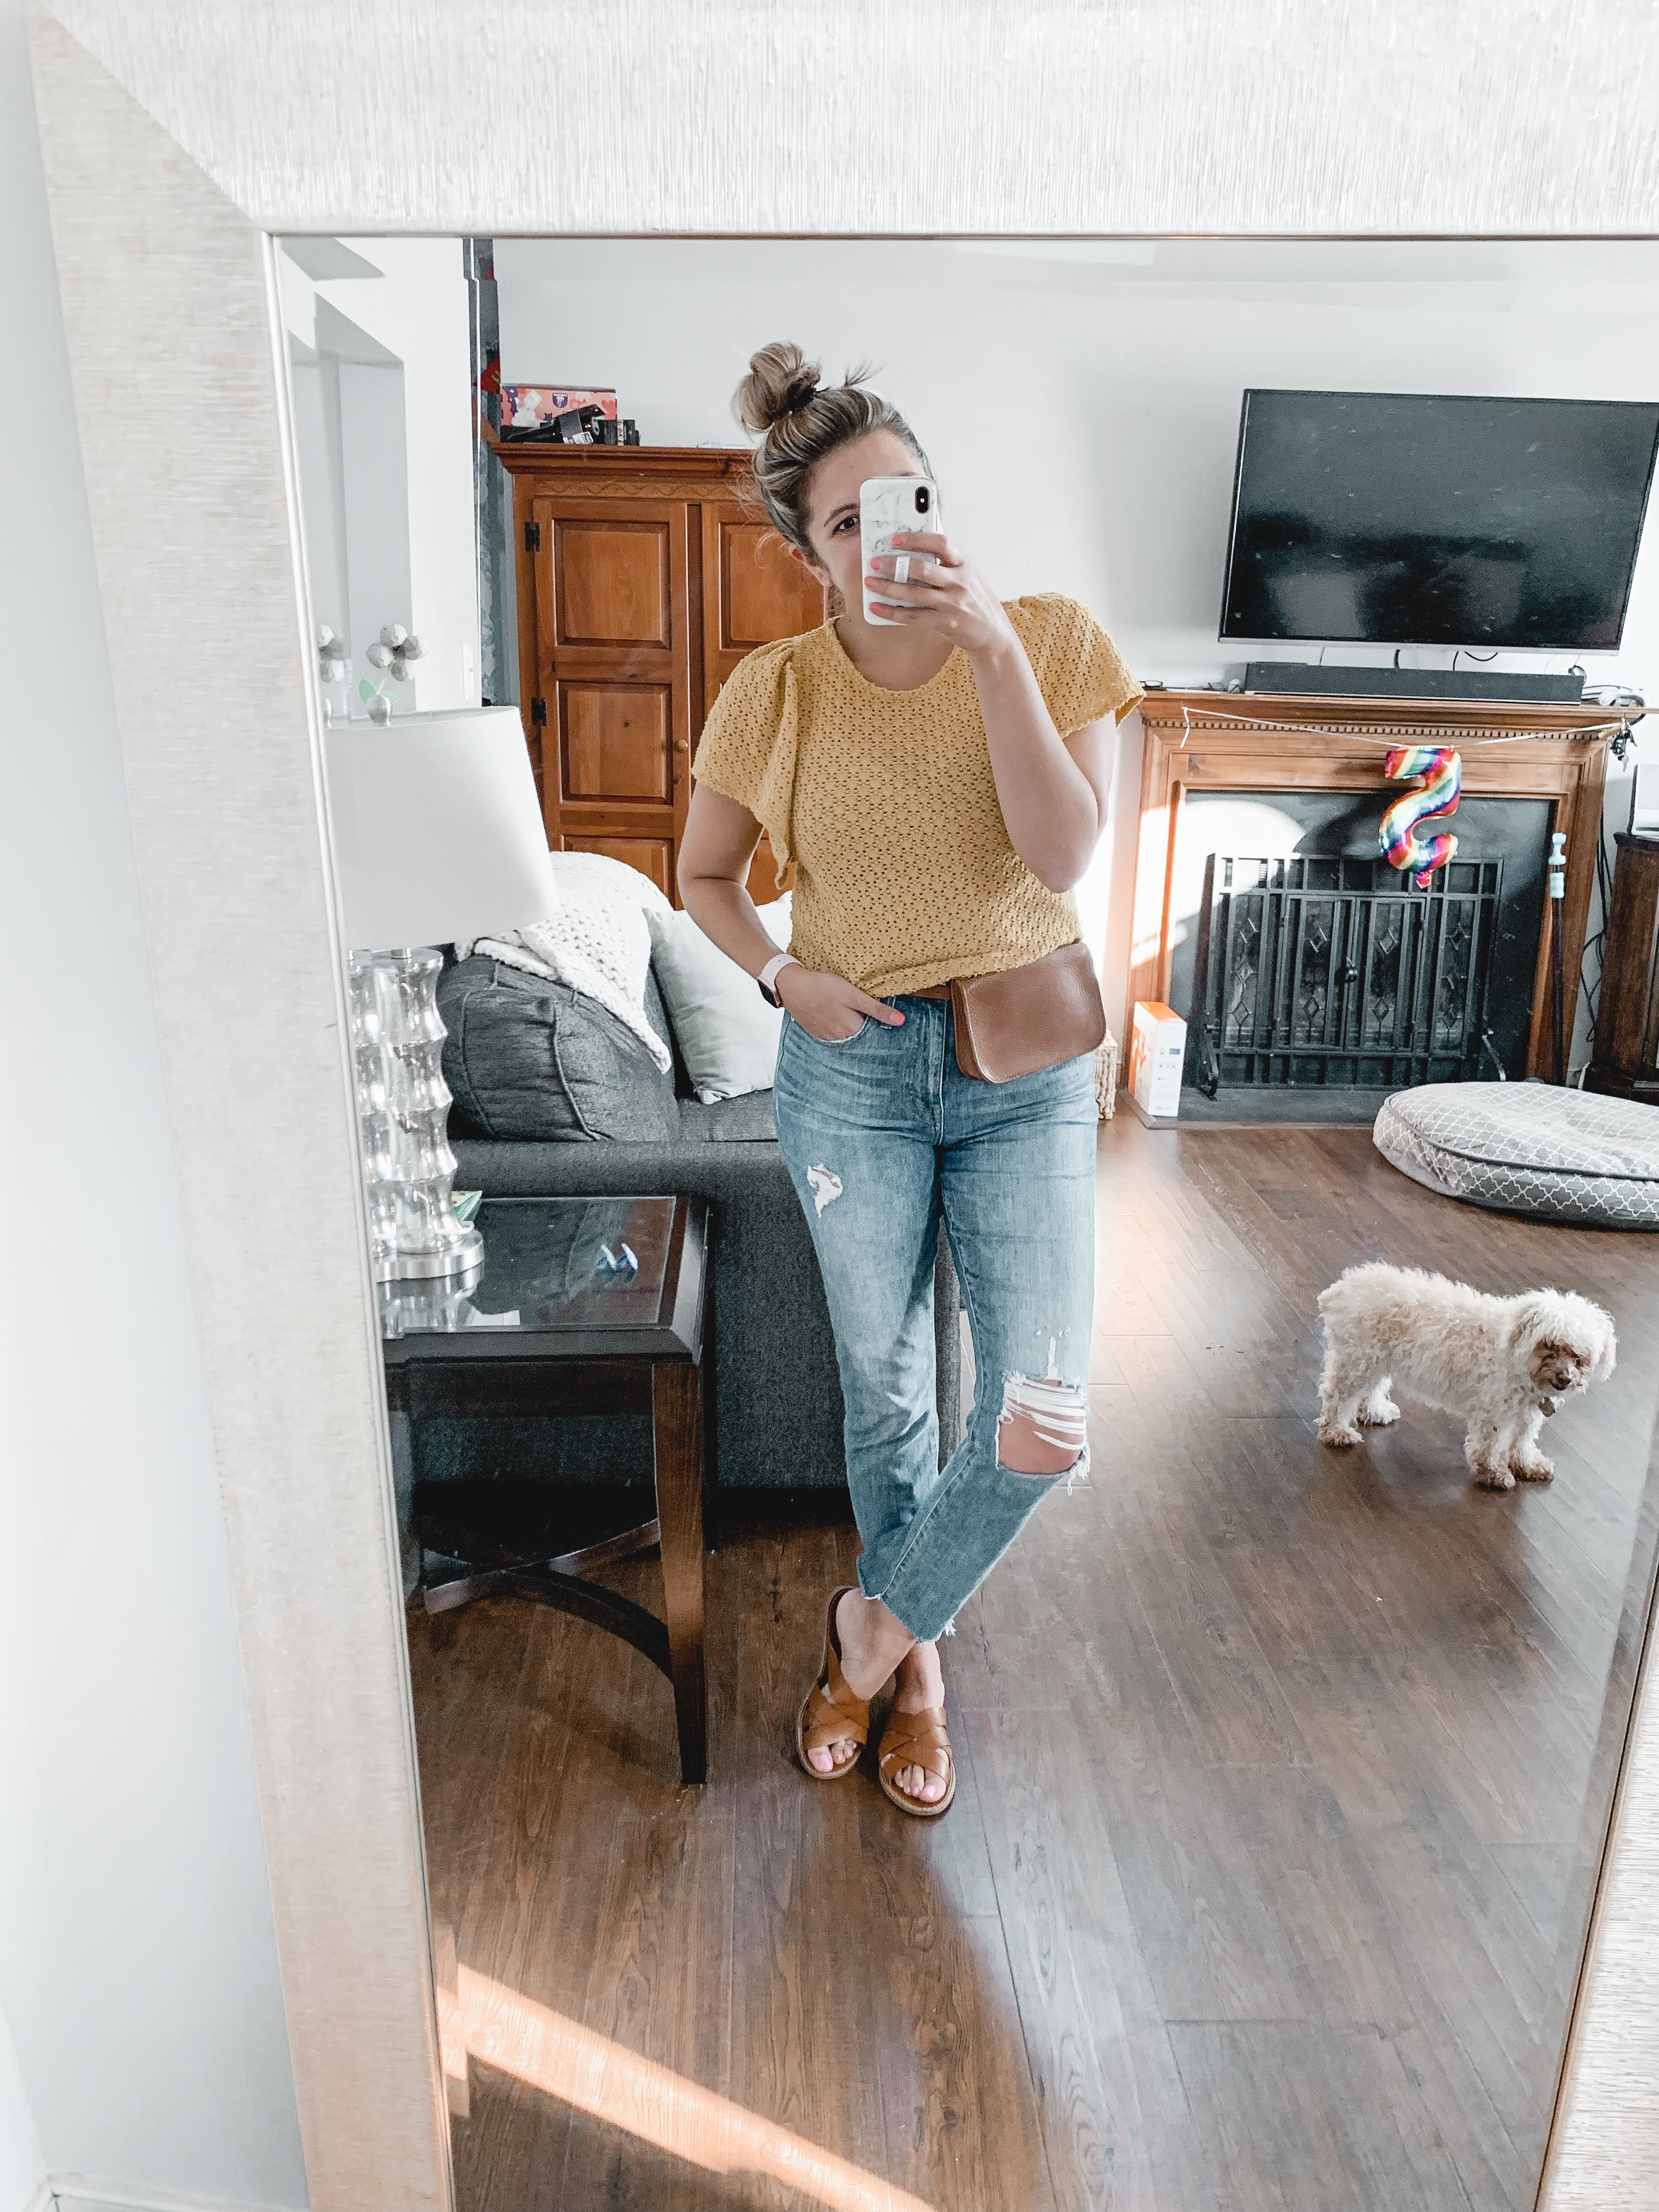 Lauren Dix shares the best Labor Day sales, including this Madewell outfit with yellow eyelet top, boyfriend jeans, and belt bag.